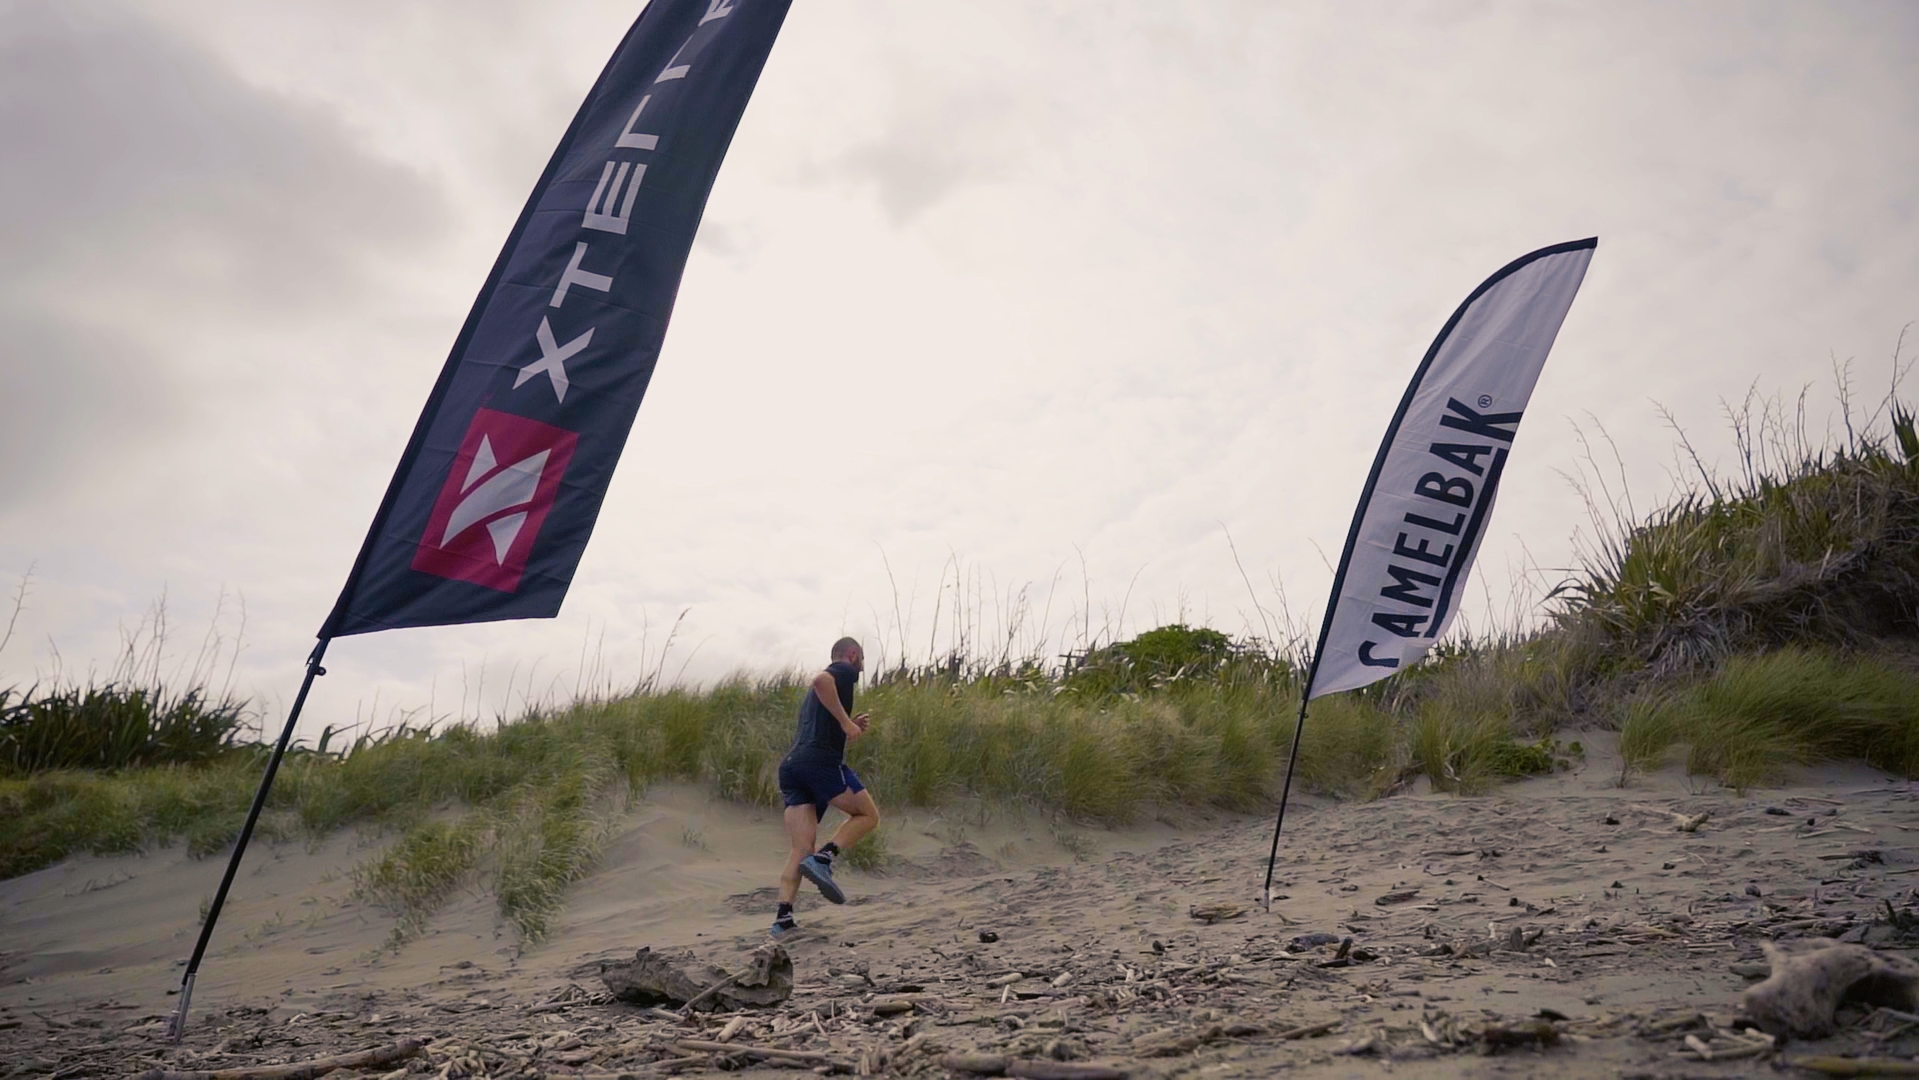 Xterra Wellington - Project Manager, Director, Editor, Cameraman